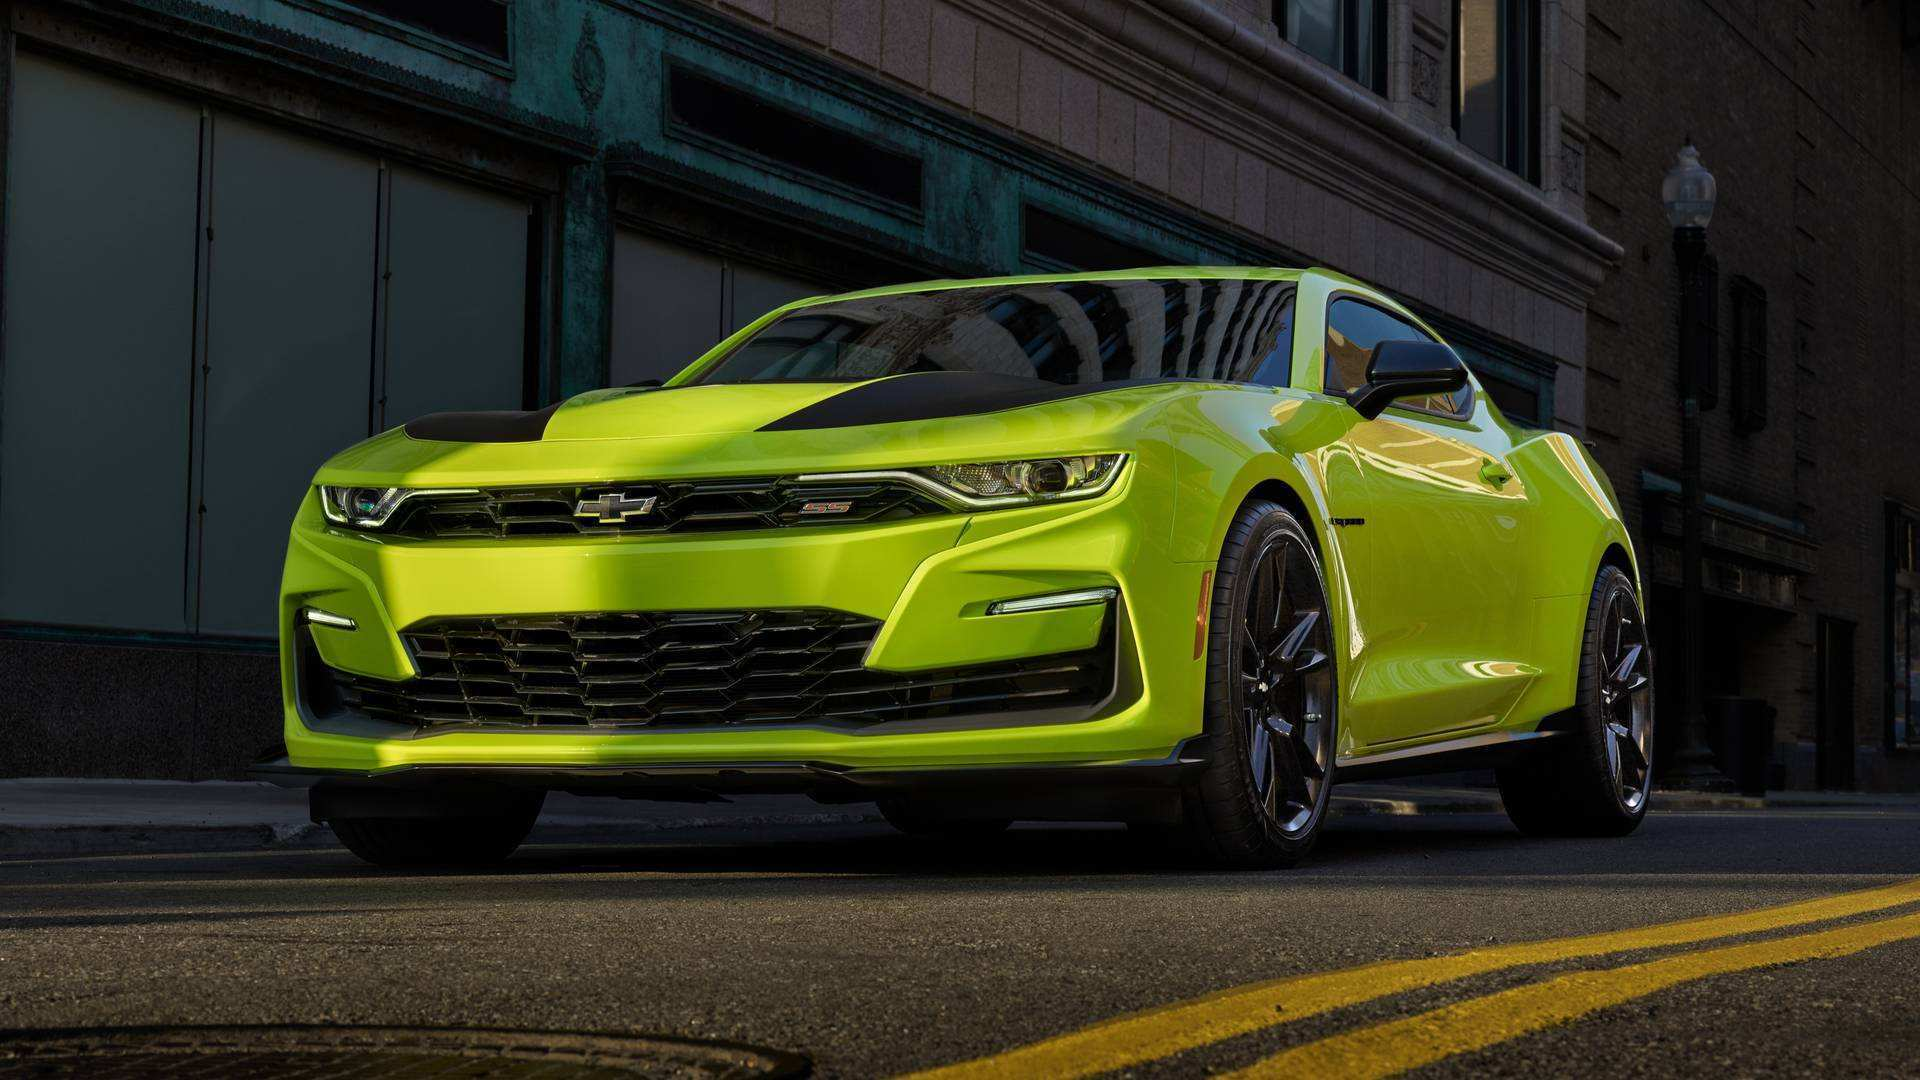 37 A 2020 The Camaro Ss Review